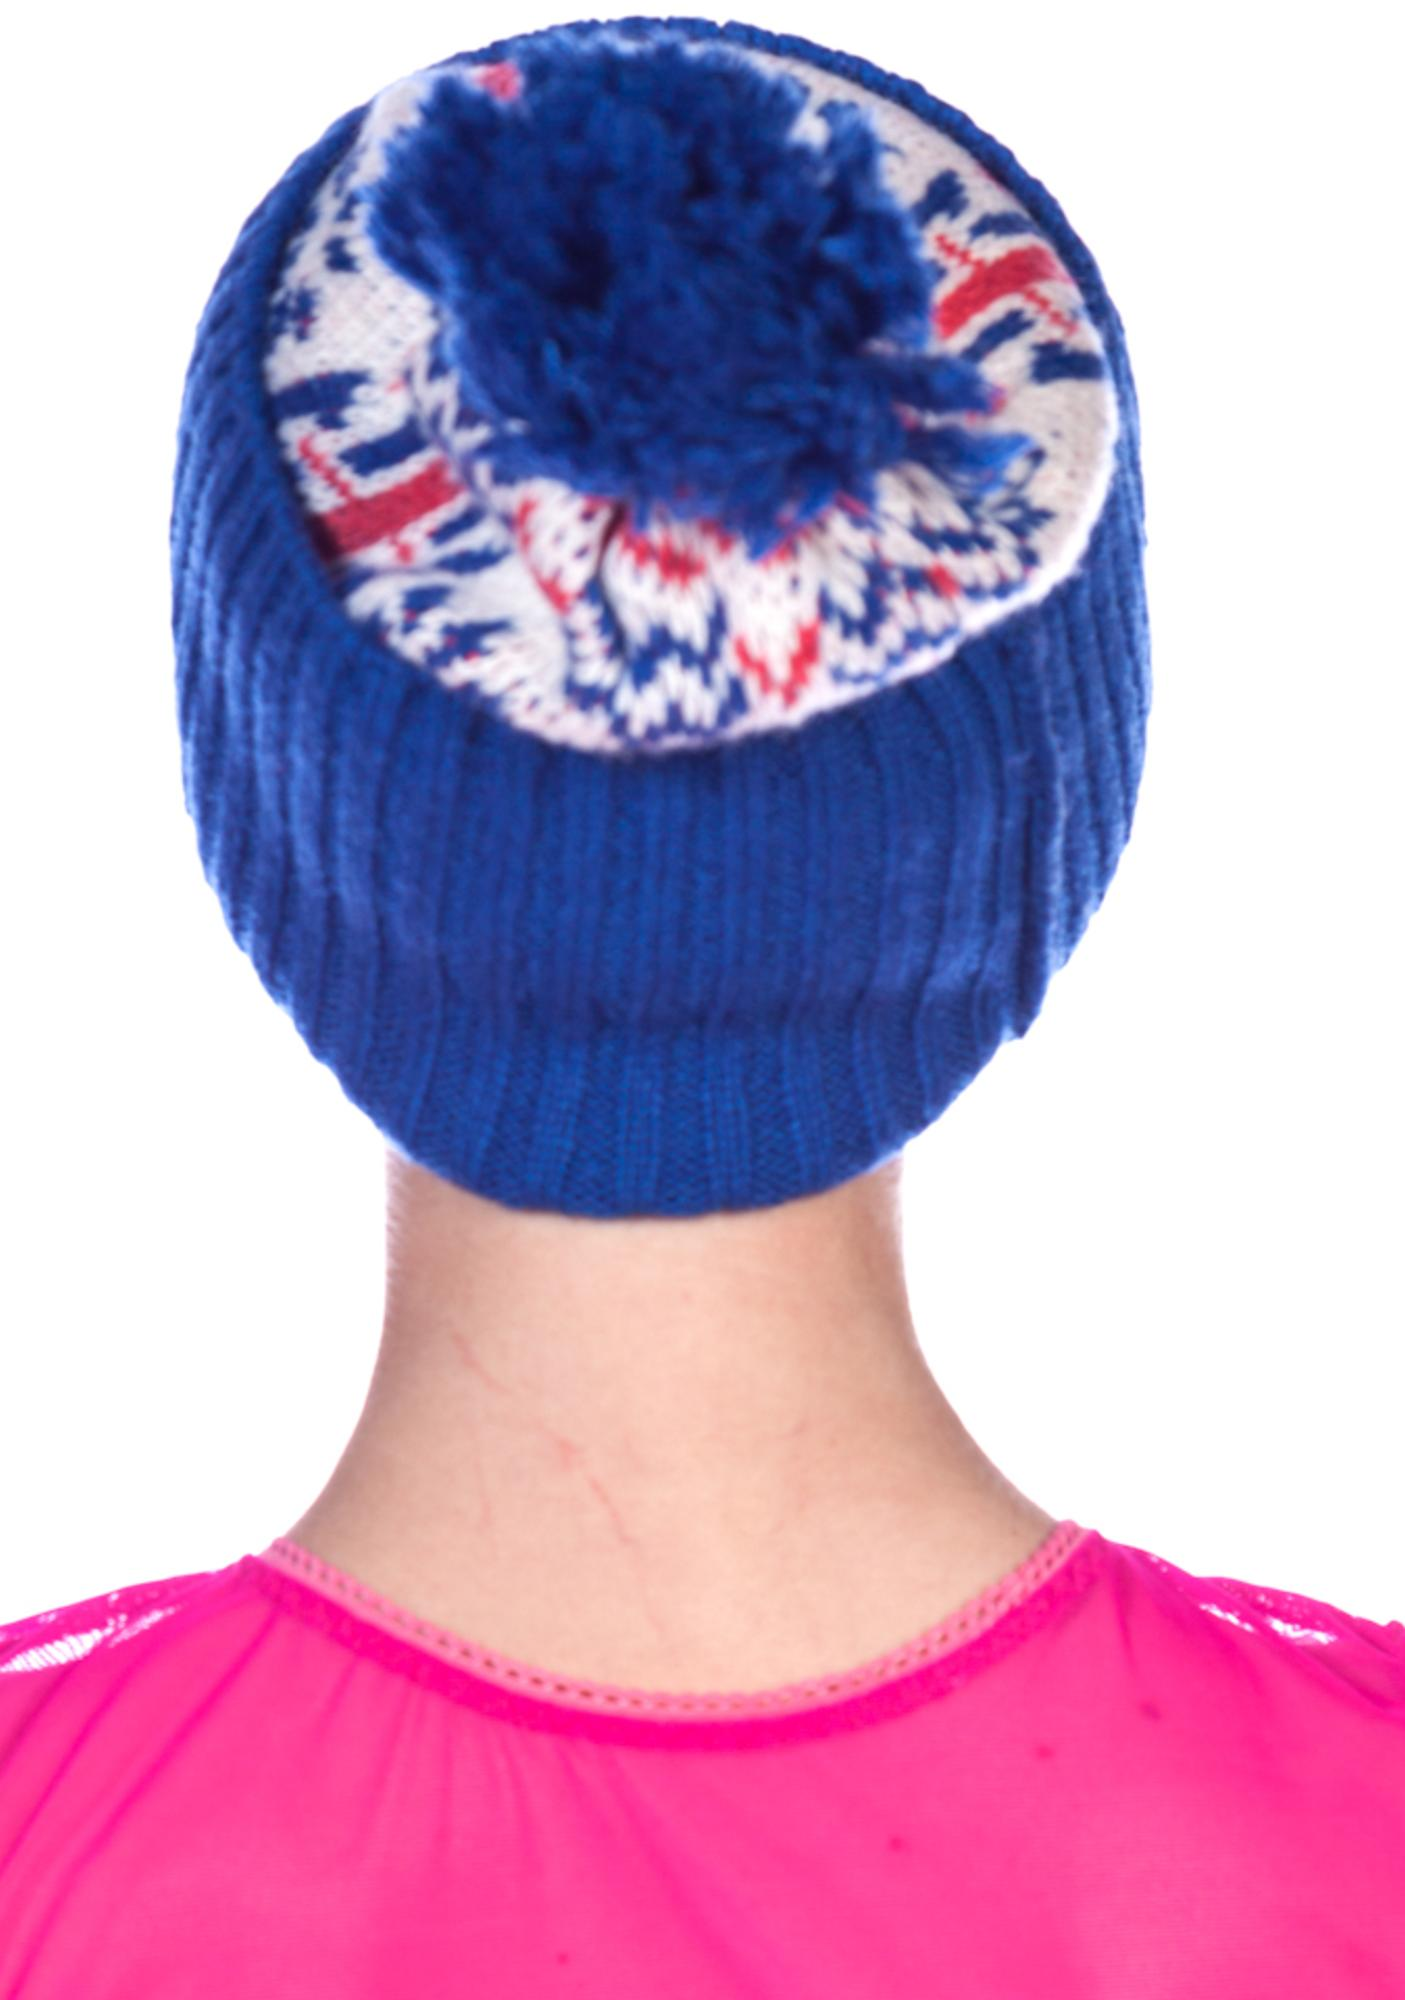 Halfman Romantics UK Nordic Knit Cap